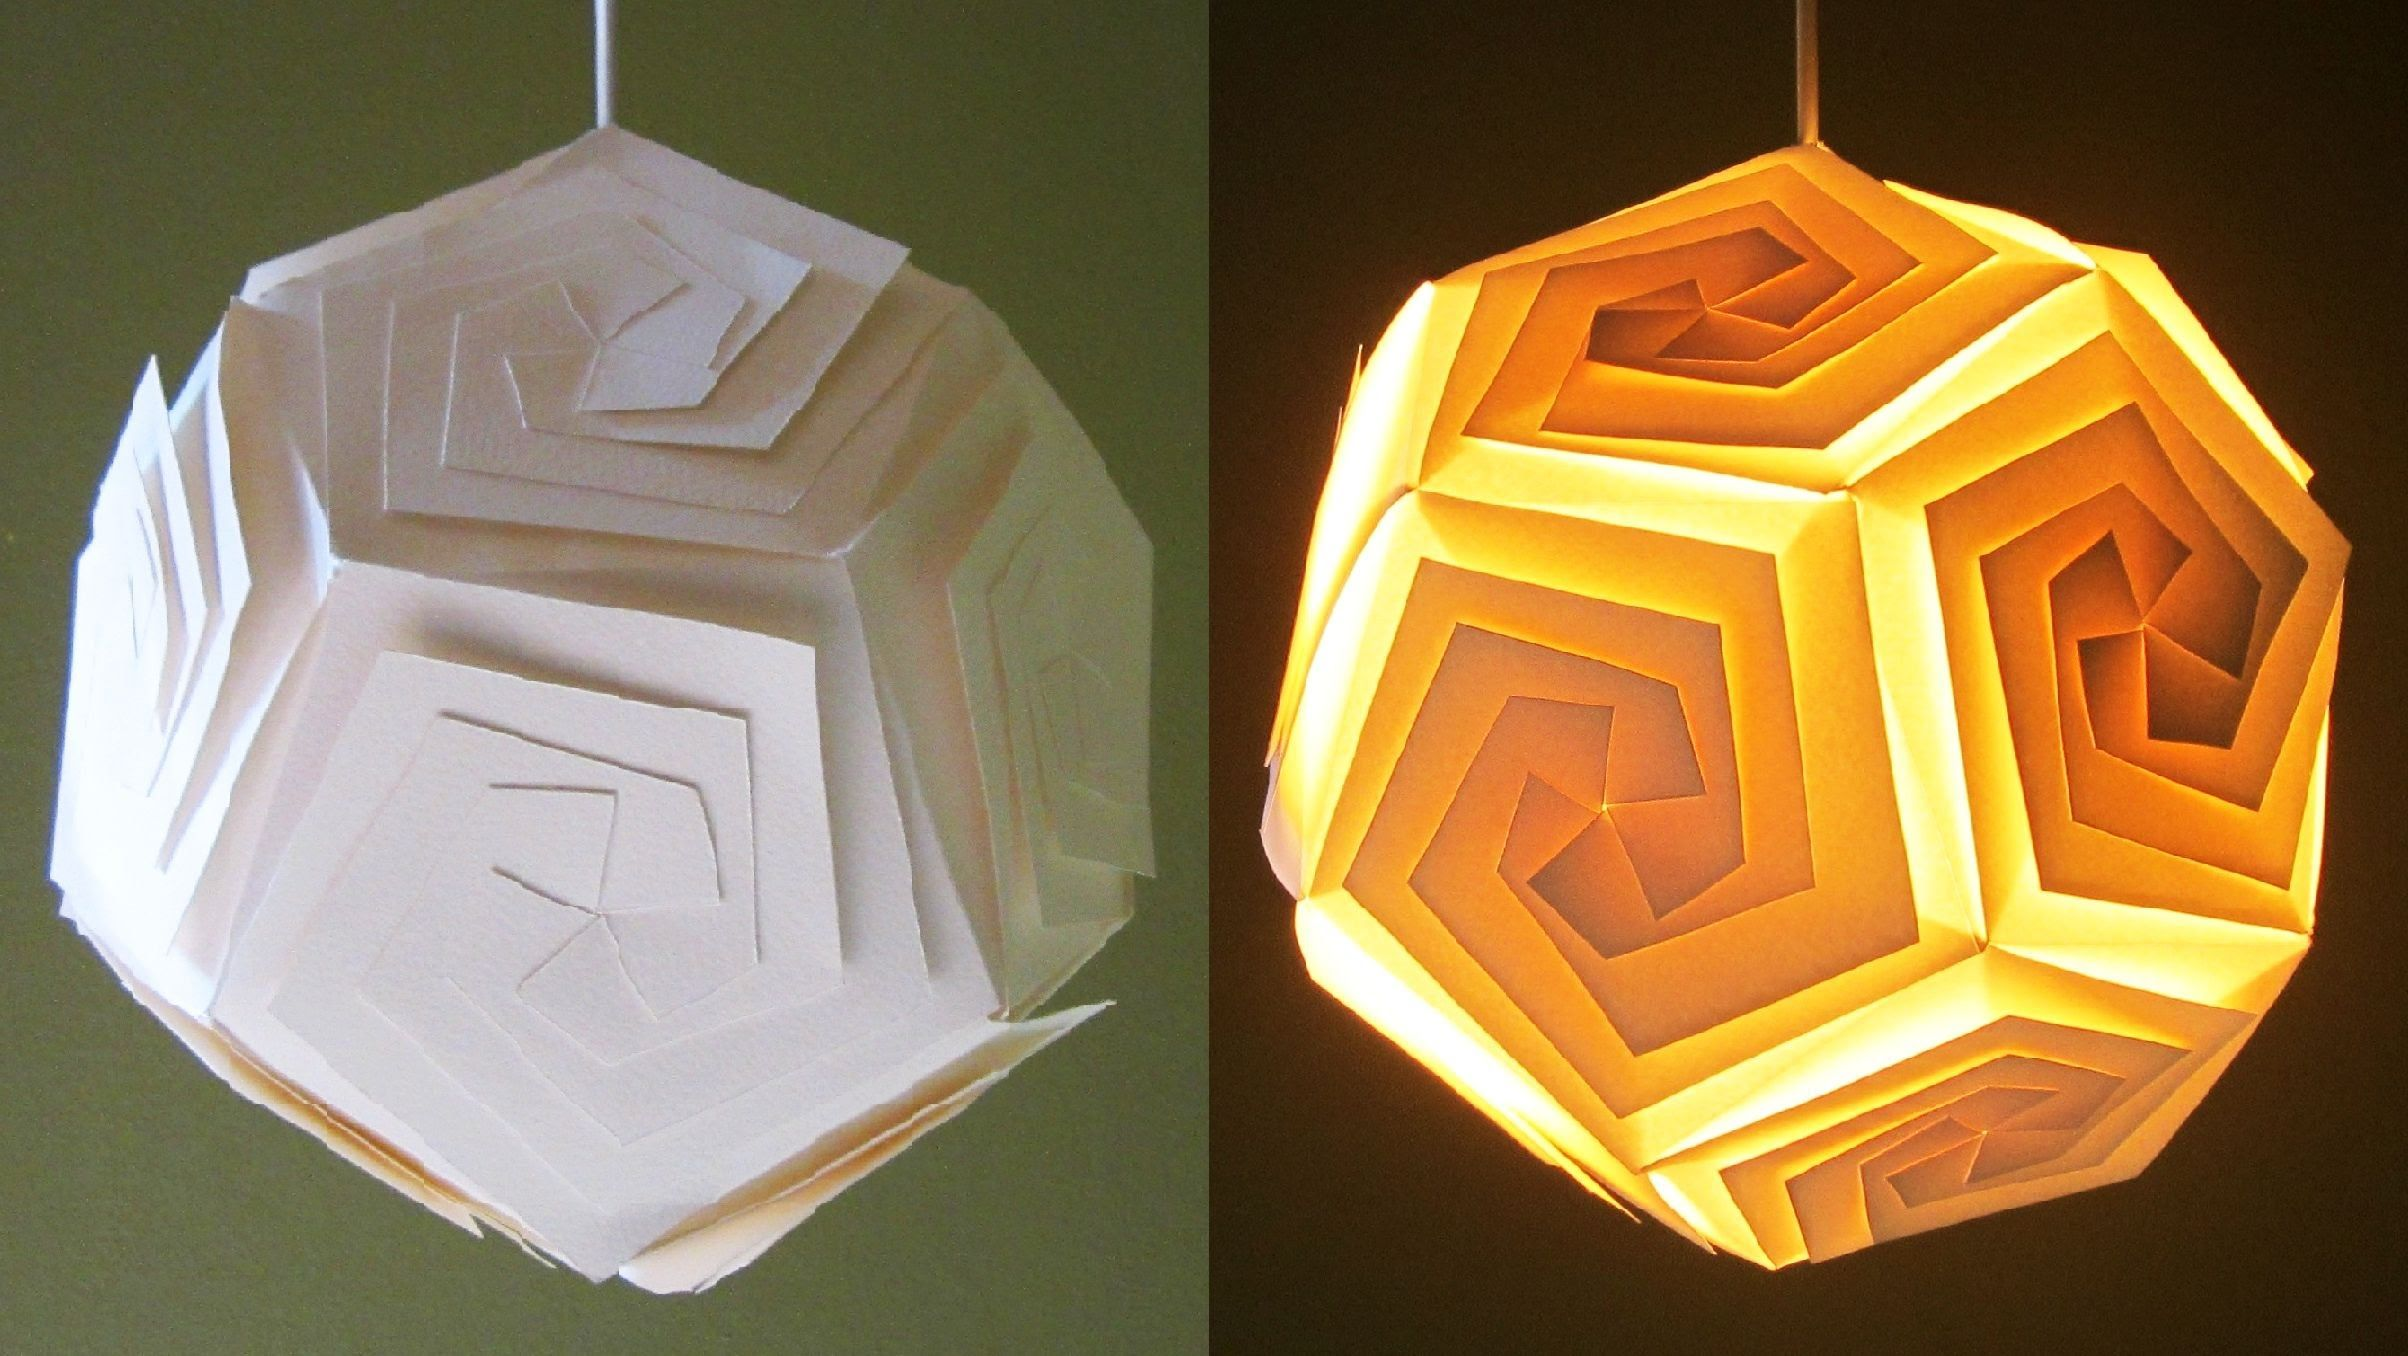 Diy Lampshade Dodecahedron Learn How To Make A Paper Lamp Lantern By Template Ezycraft Origami Lamp Diy Lamp Shade Paper Lampshade